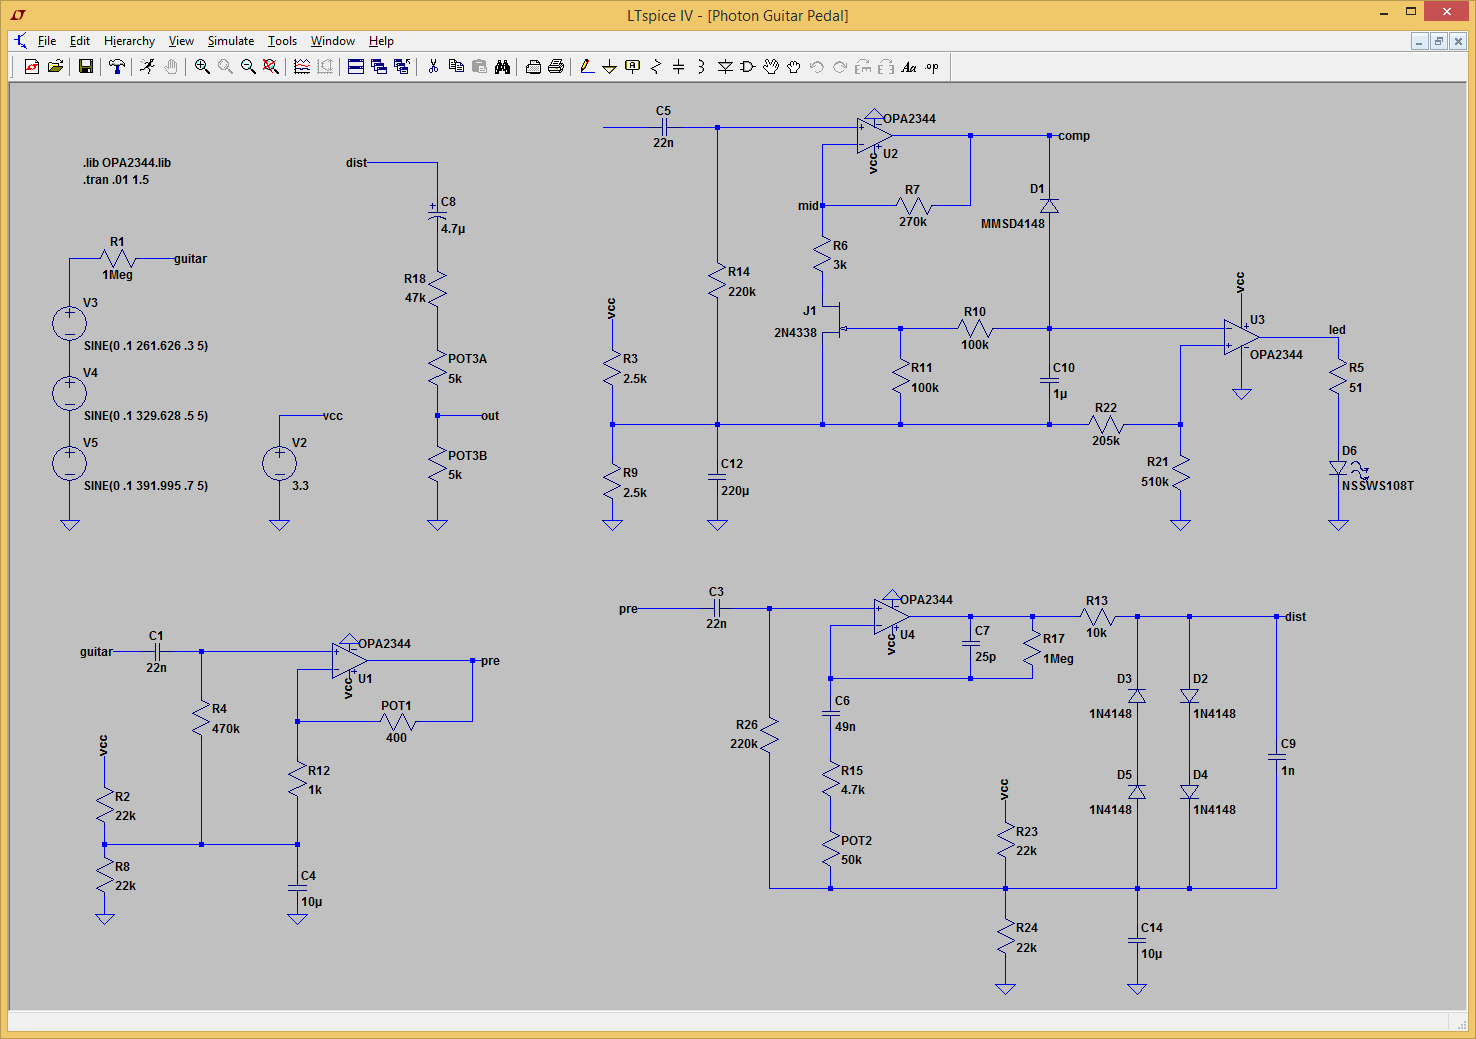 Fig. 6: Final design of the Photon Guitar Pedal in LTspice.